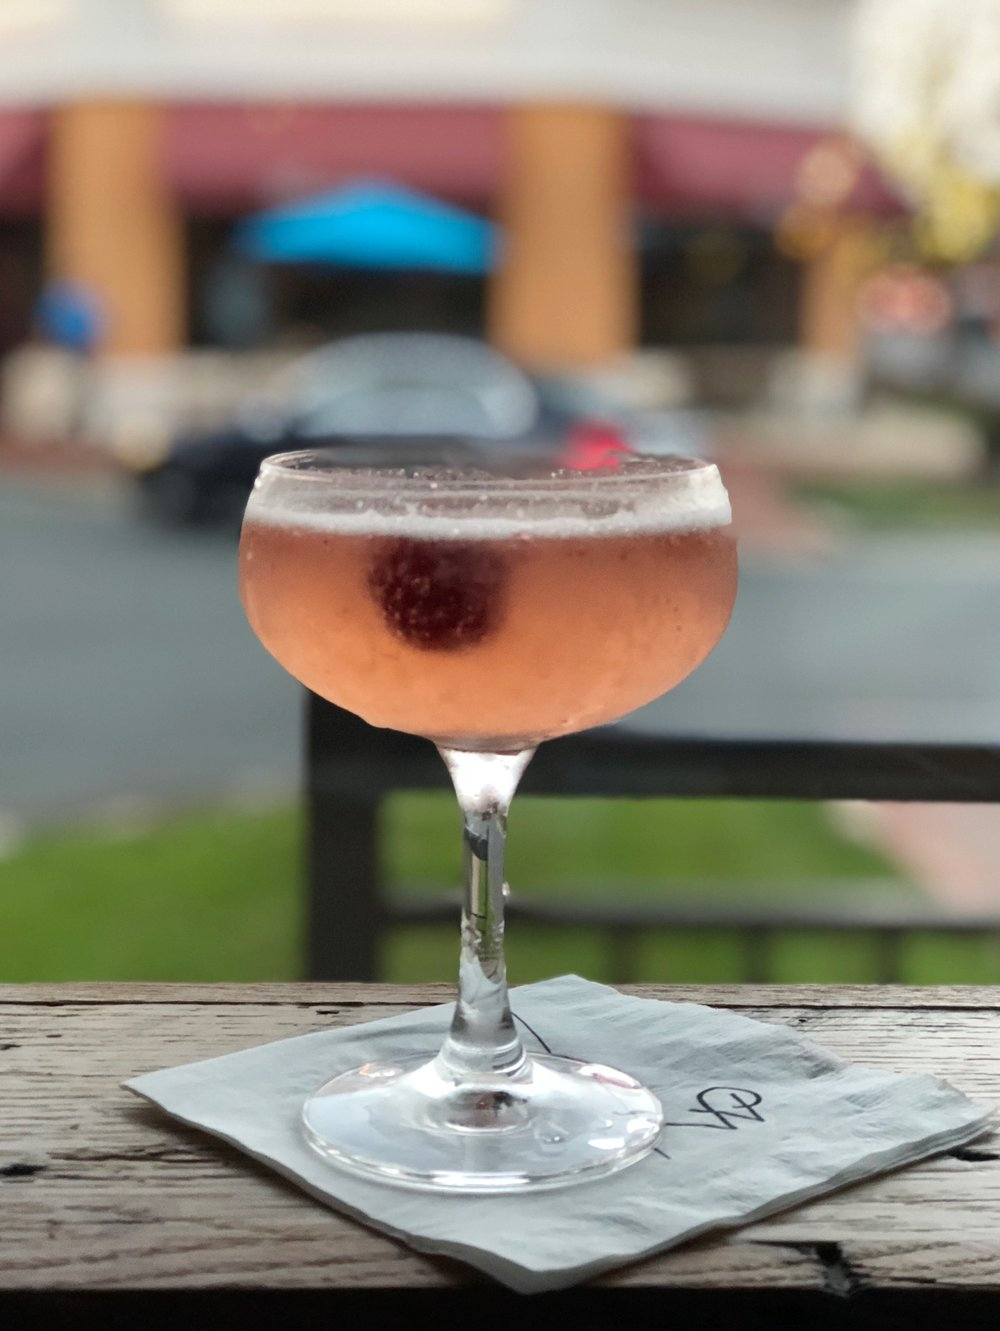 Calling Dr. Love | A mildly tart and refreshing mix of fresh raspberries, Ban Vodka, St. Germaine and prosecco.